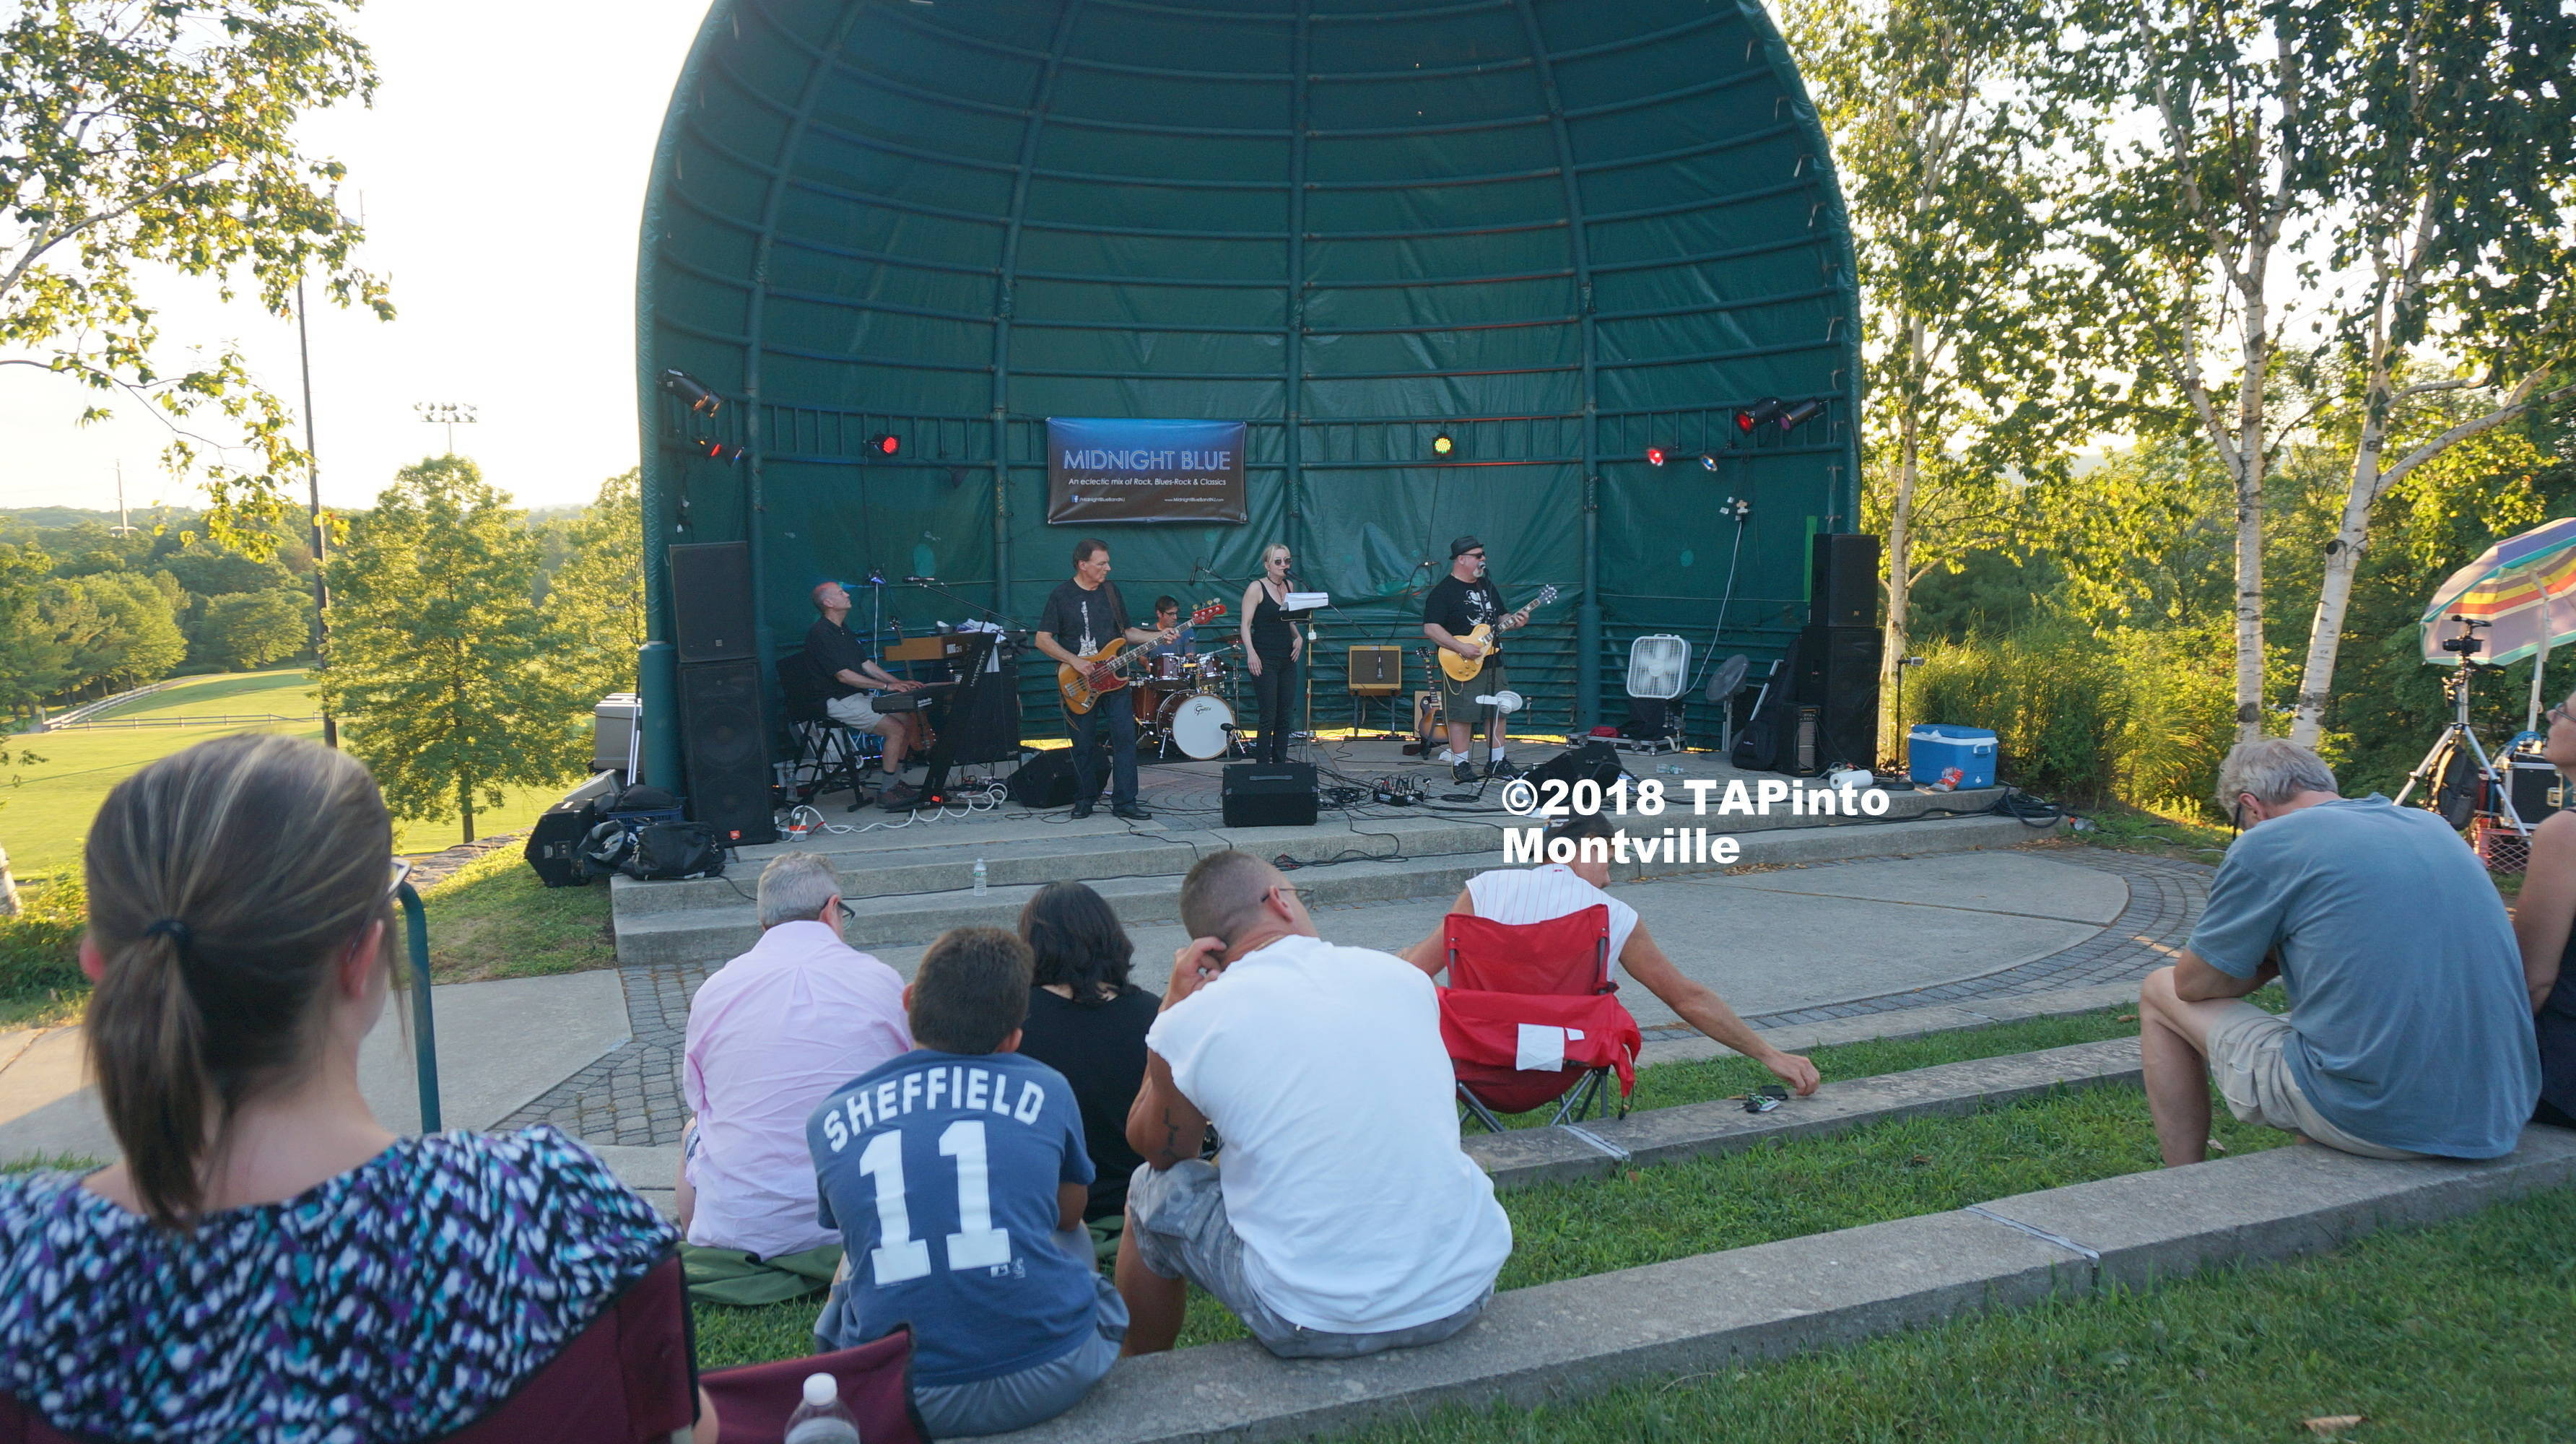 ef93c0aac2dd93cd900f_a_Recreation_s_Concerts_in_the_Park_at_the_Amphitheater__2018_TAPinto_Montville__1..JPG